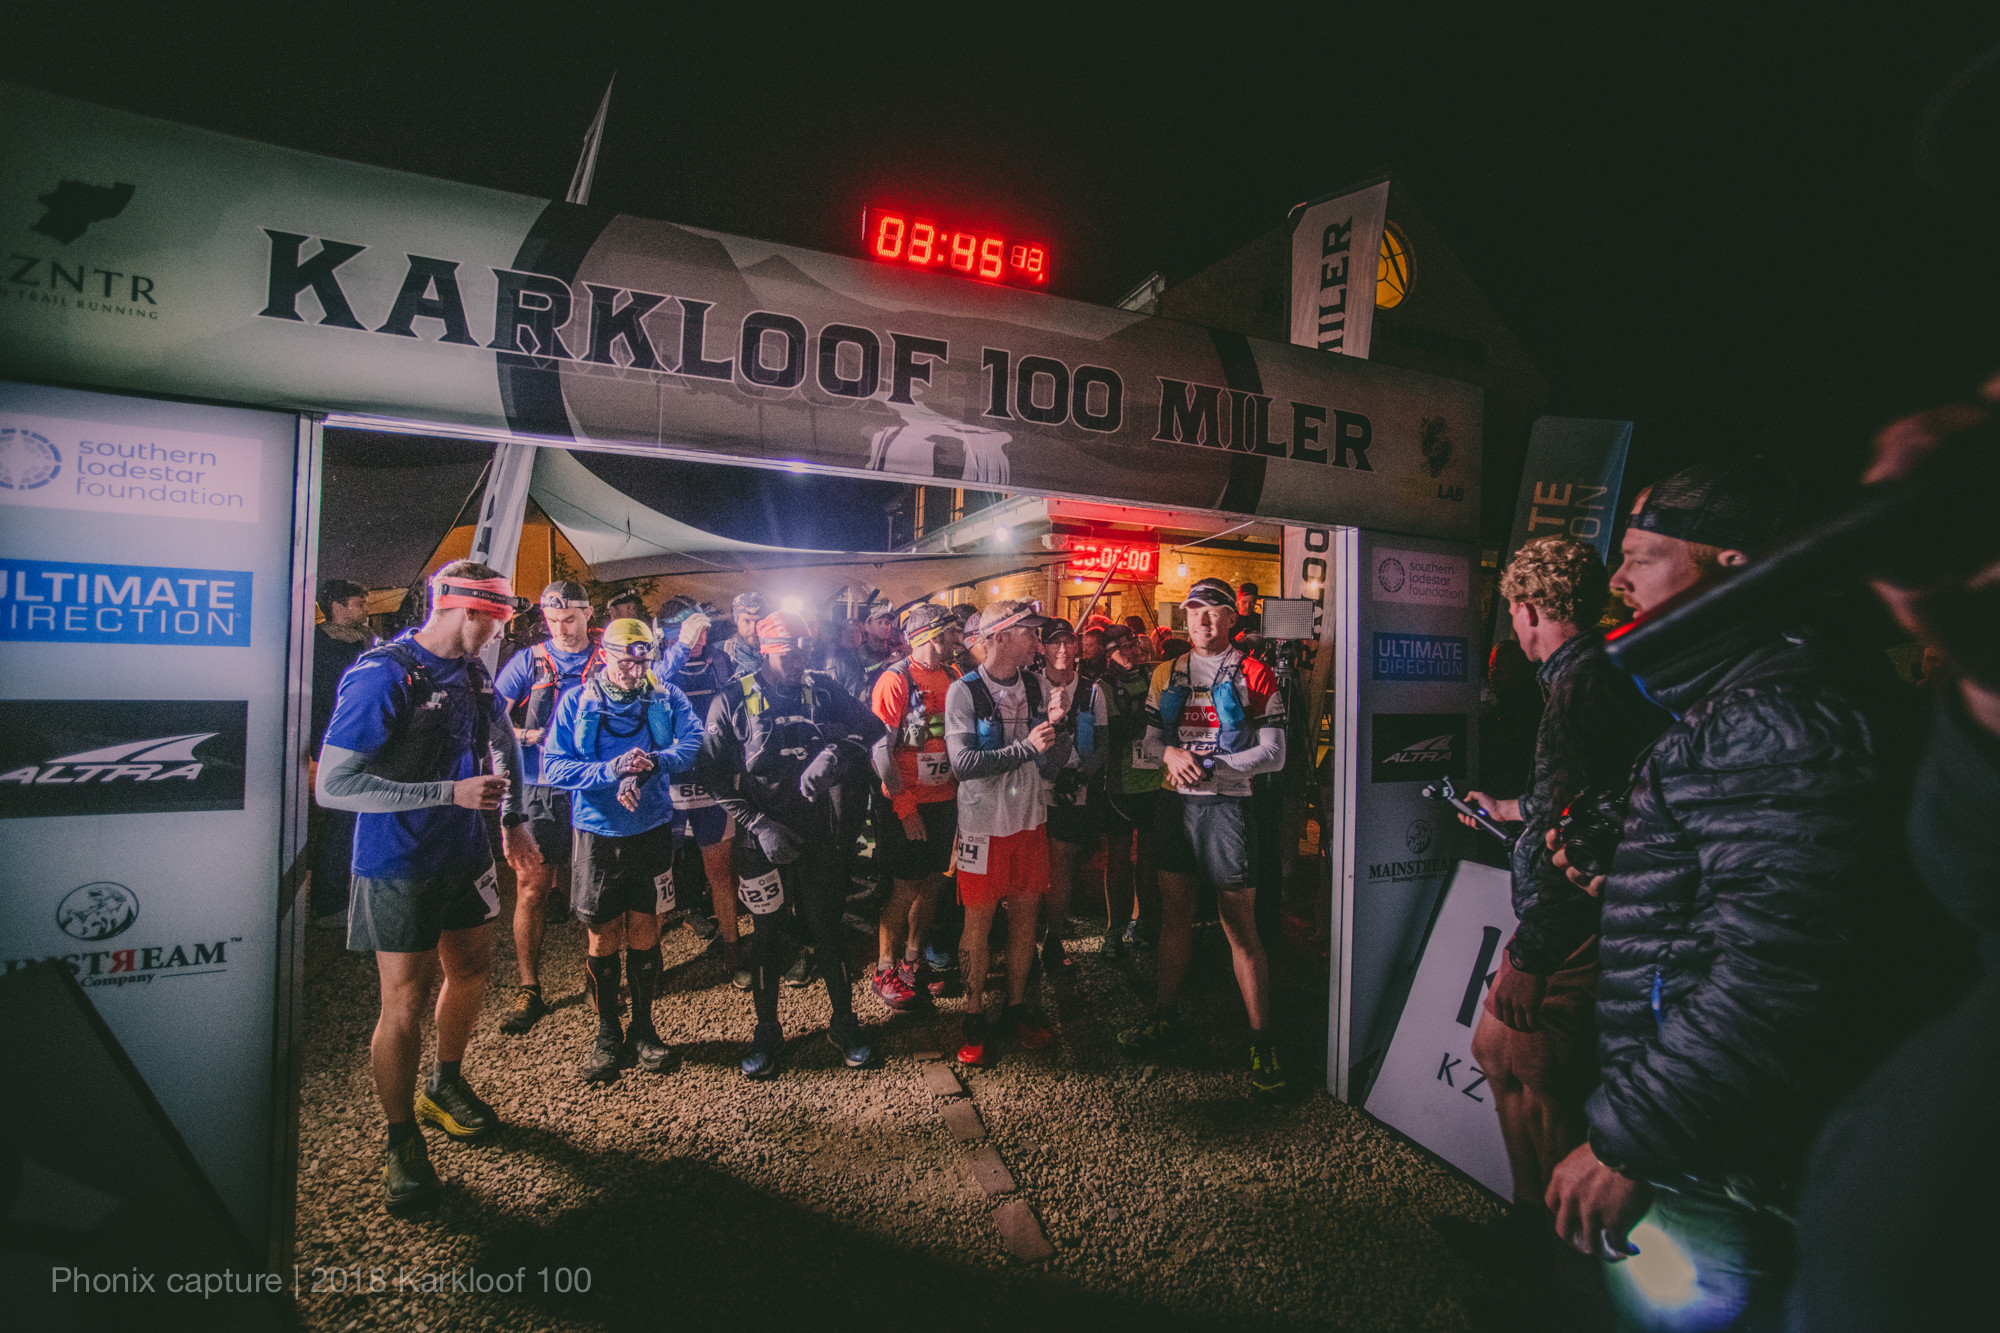 South African's Karkloof 100 miler has been selected as a qualifying race for Western States 2020